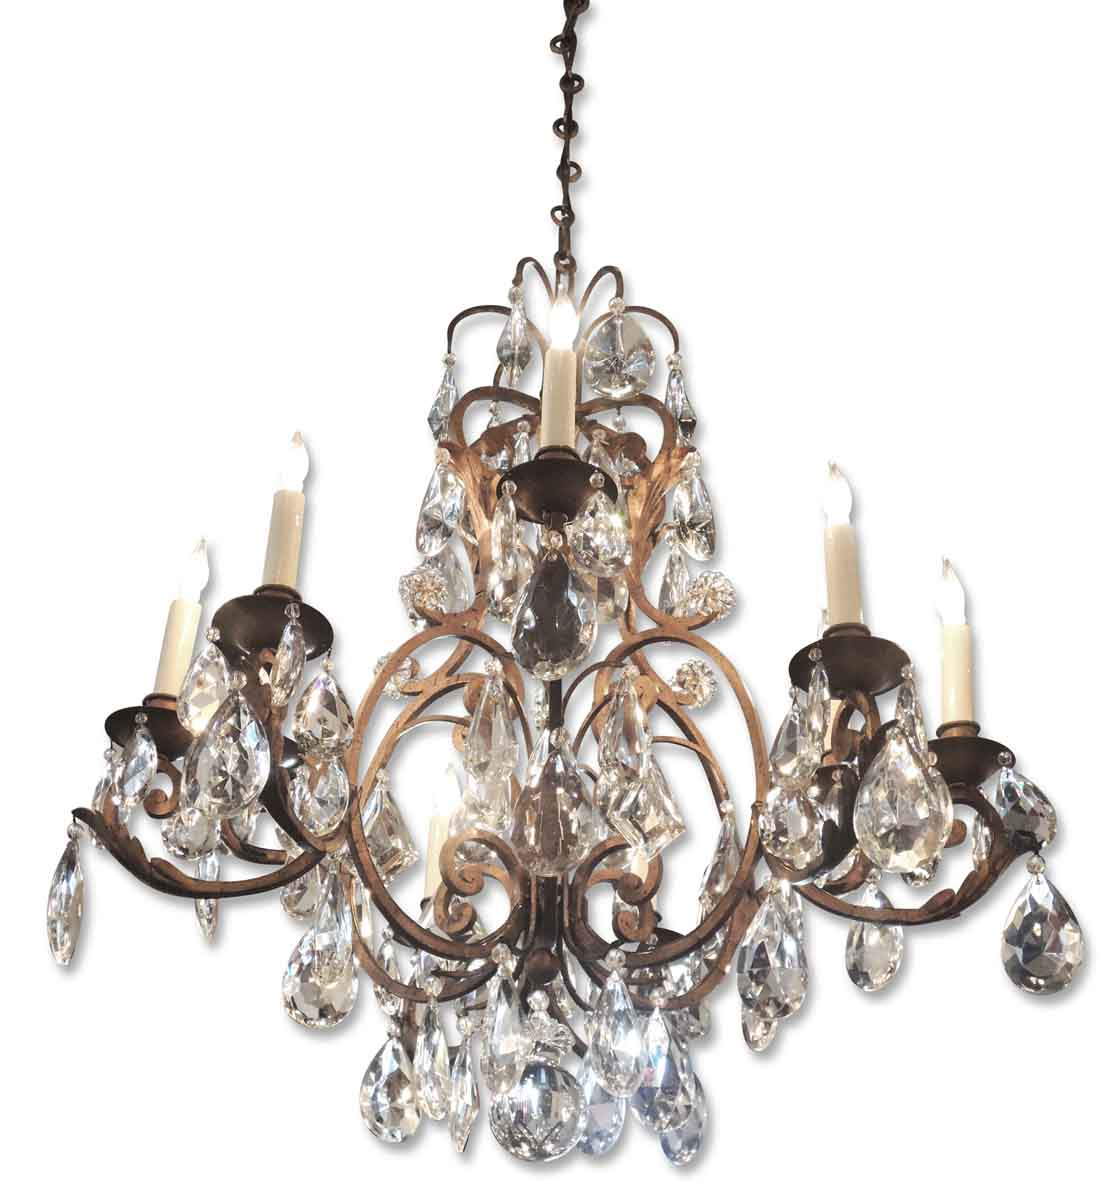 Crystal Chandelier Quality Types: French Iron Chandelier With High Quality Faceted Crystals